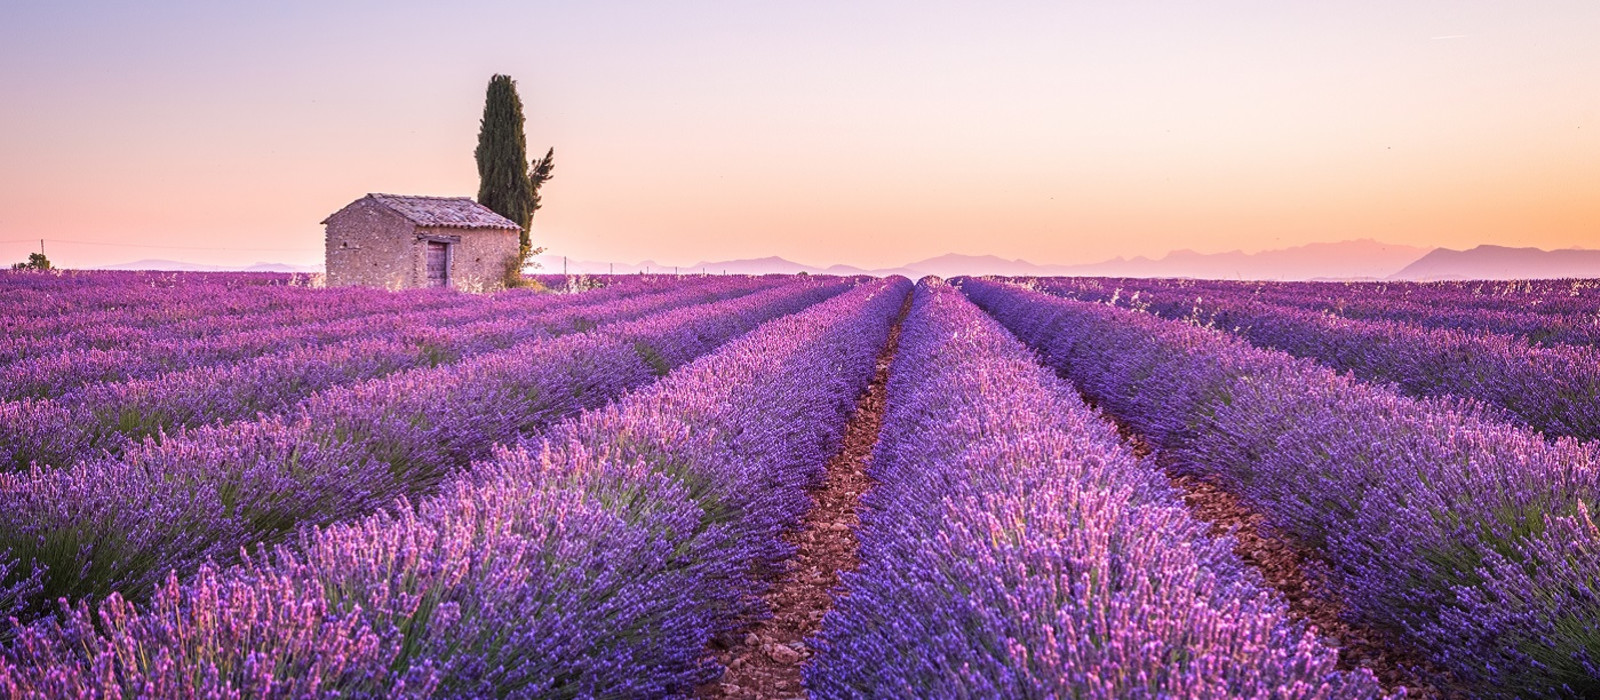 Valensole lavender fields, Provence, France, Europe